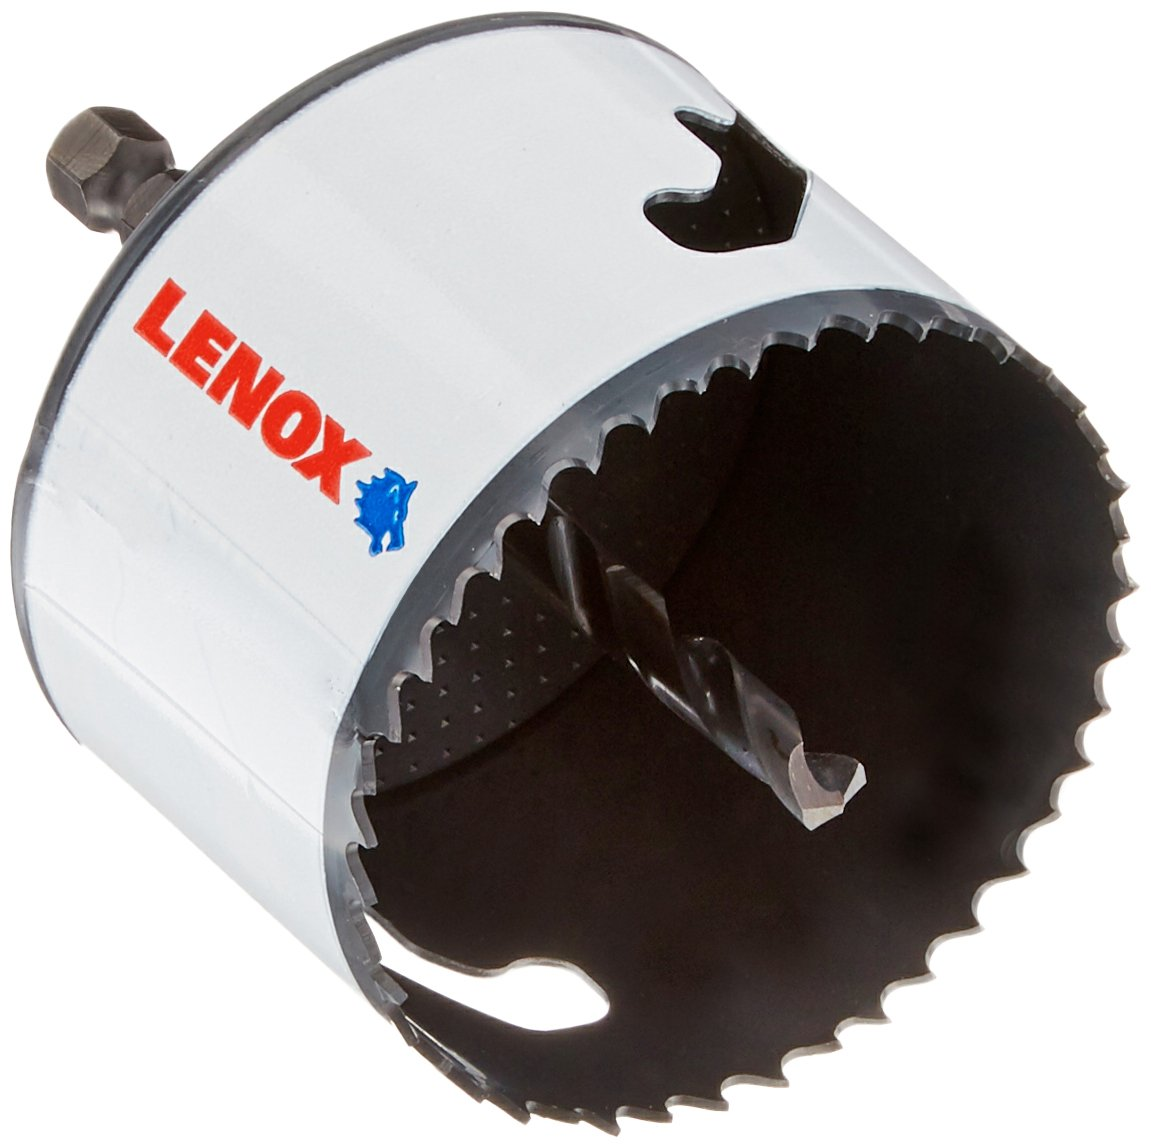 LENOX Tools Bi-Metal Speed Slot Arbored Hole Saw with T3 Technology, 2-7/8'' by Lenox Tools